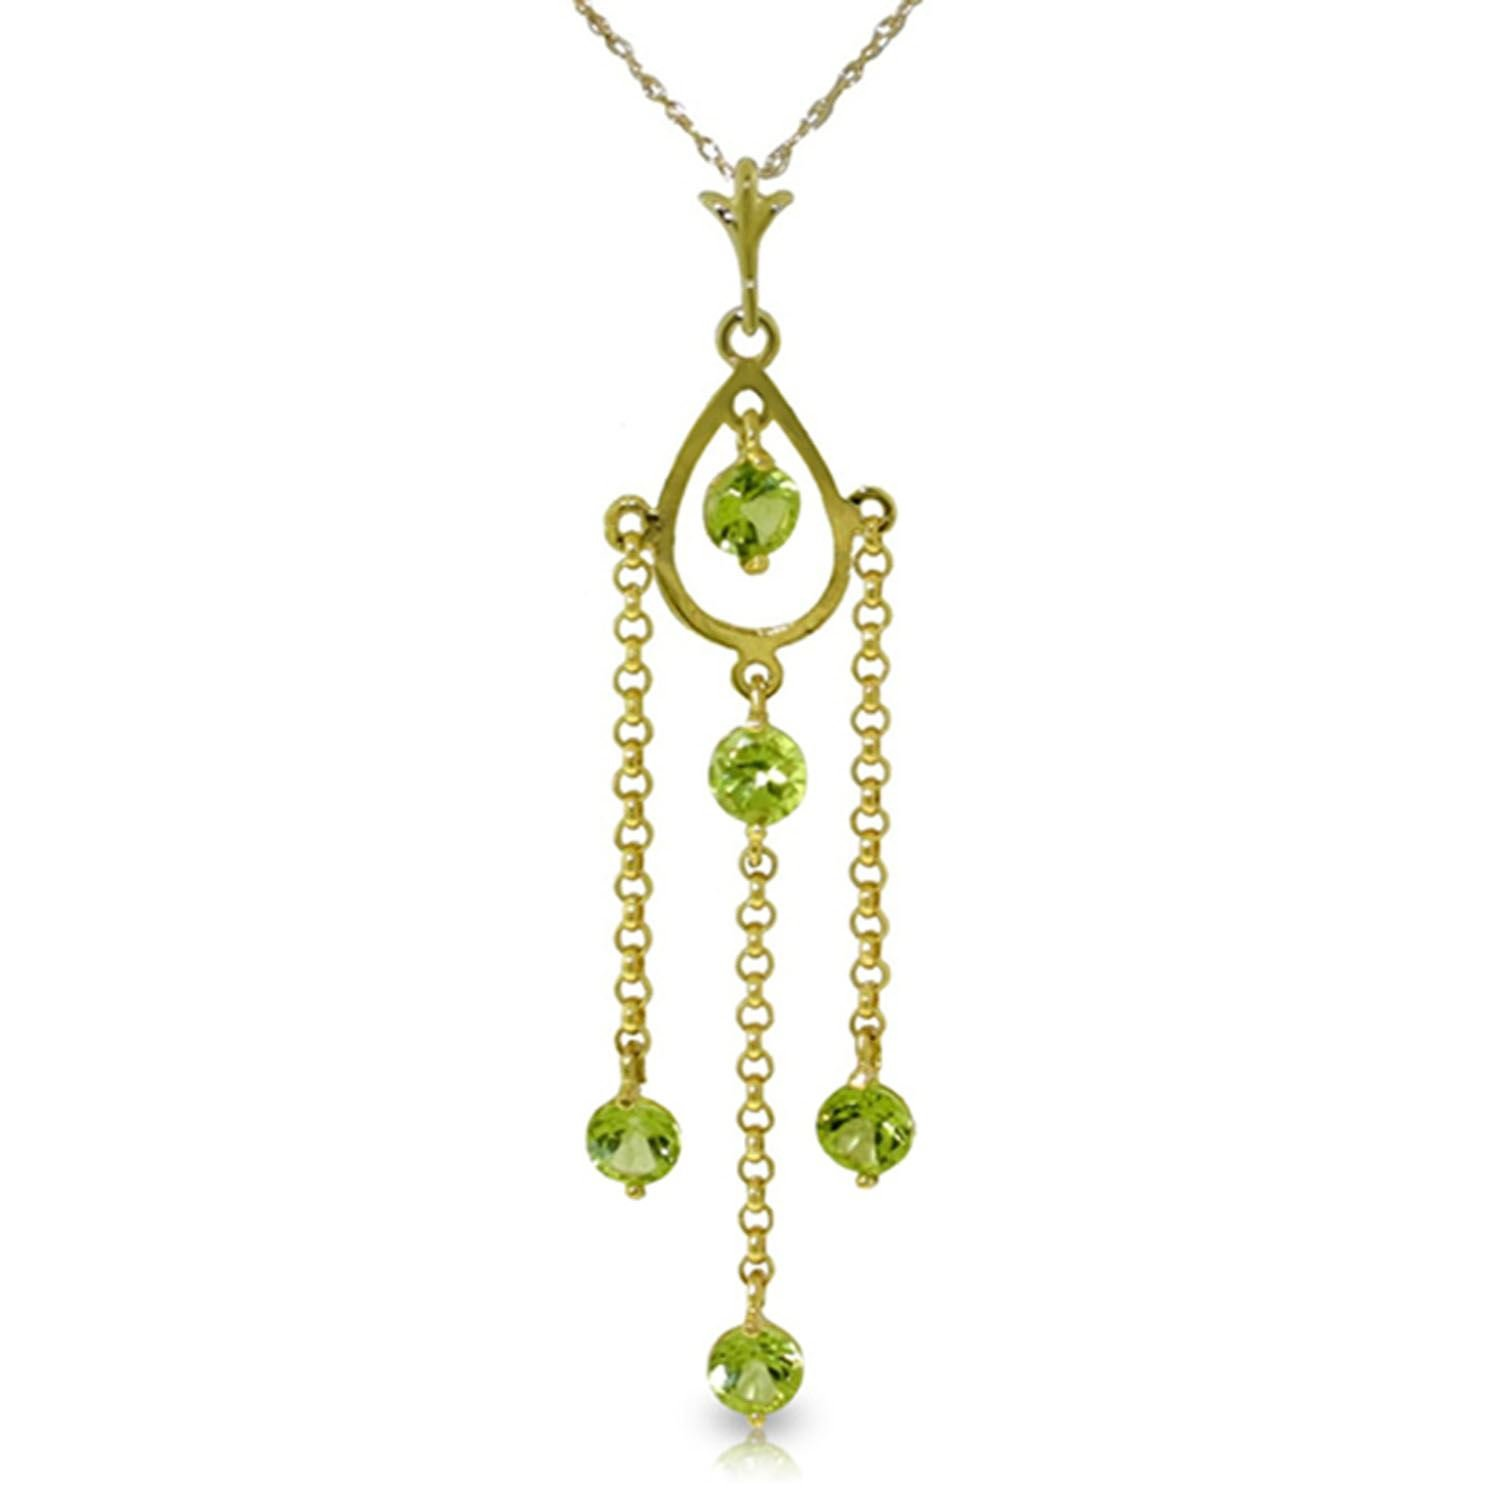 ALARRI 1.5 CTW 14K Solid Gold O Love Peridot Necklace with 22 Inch Chain Length